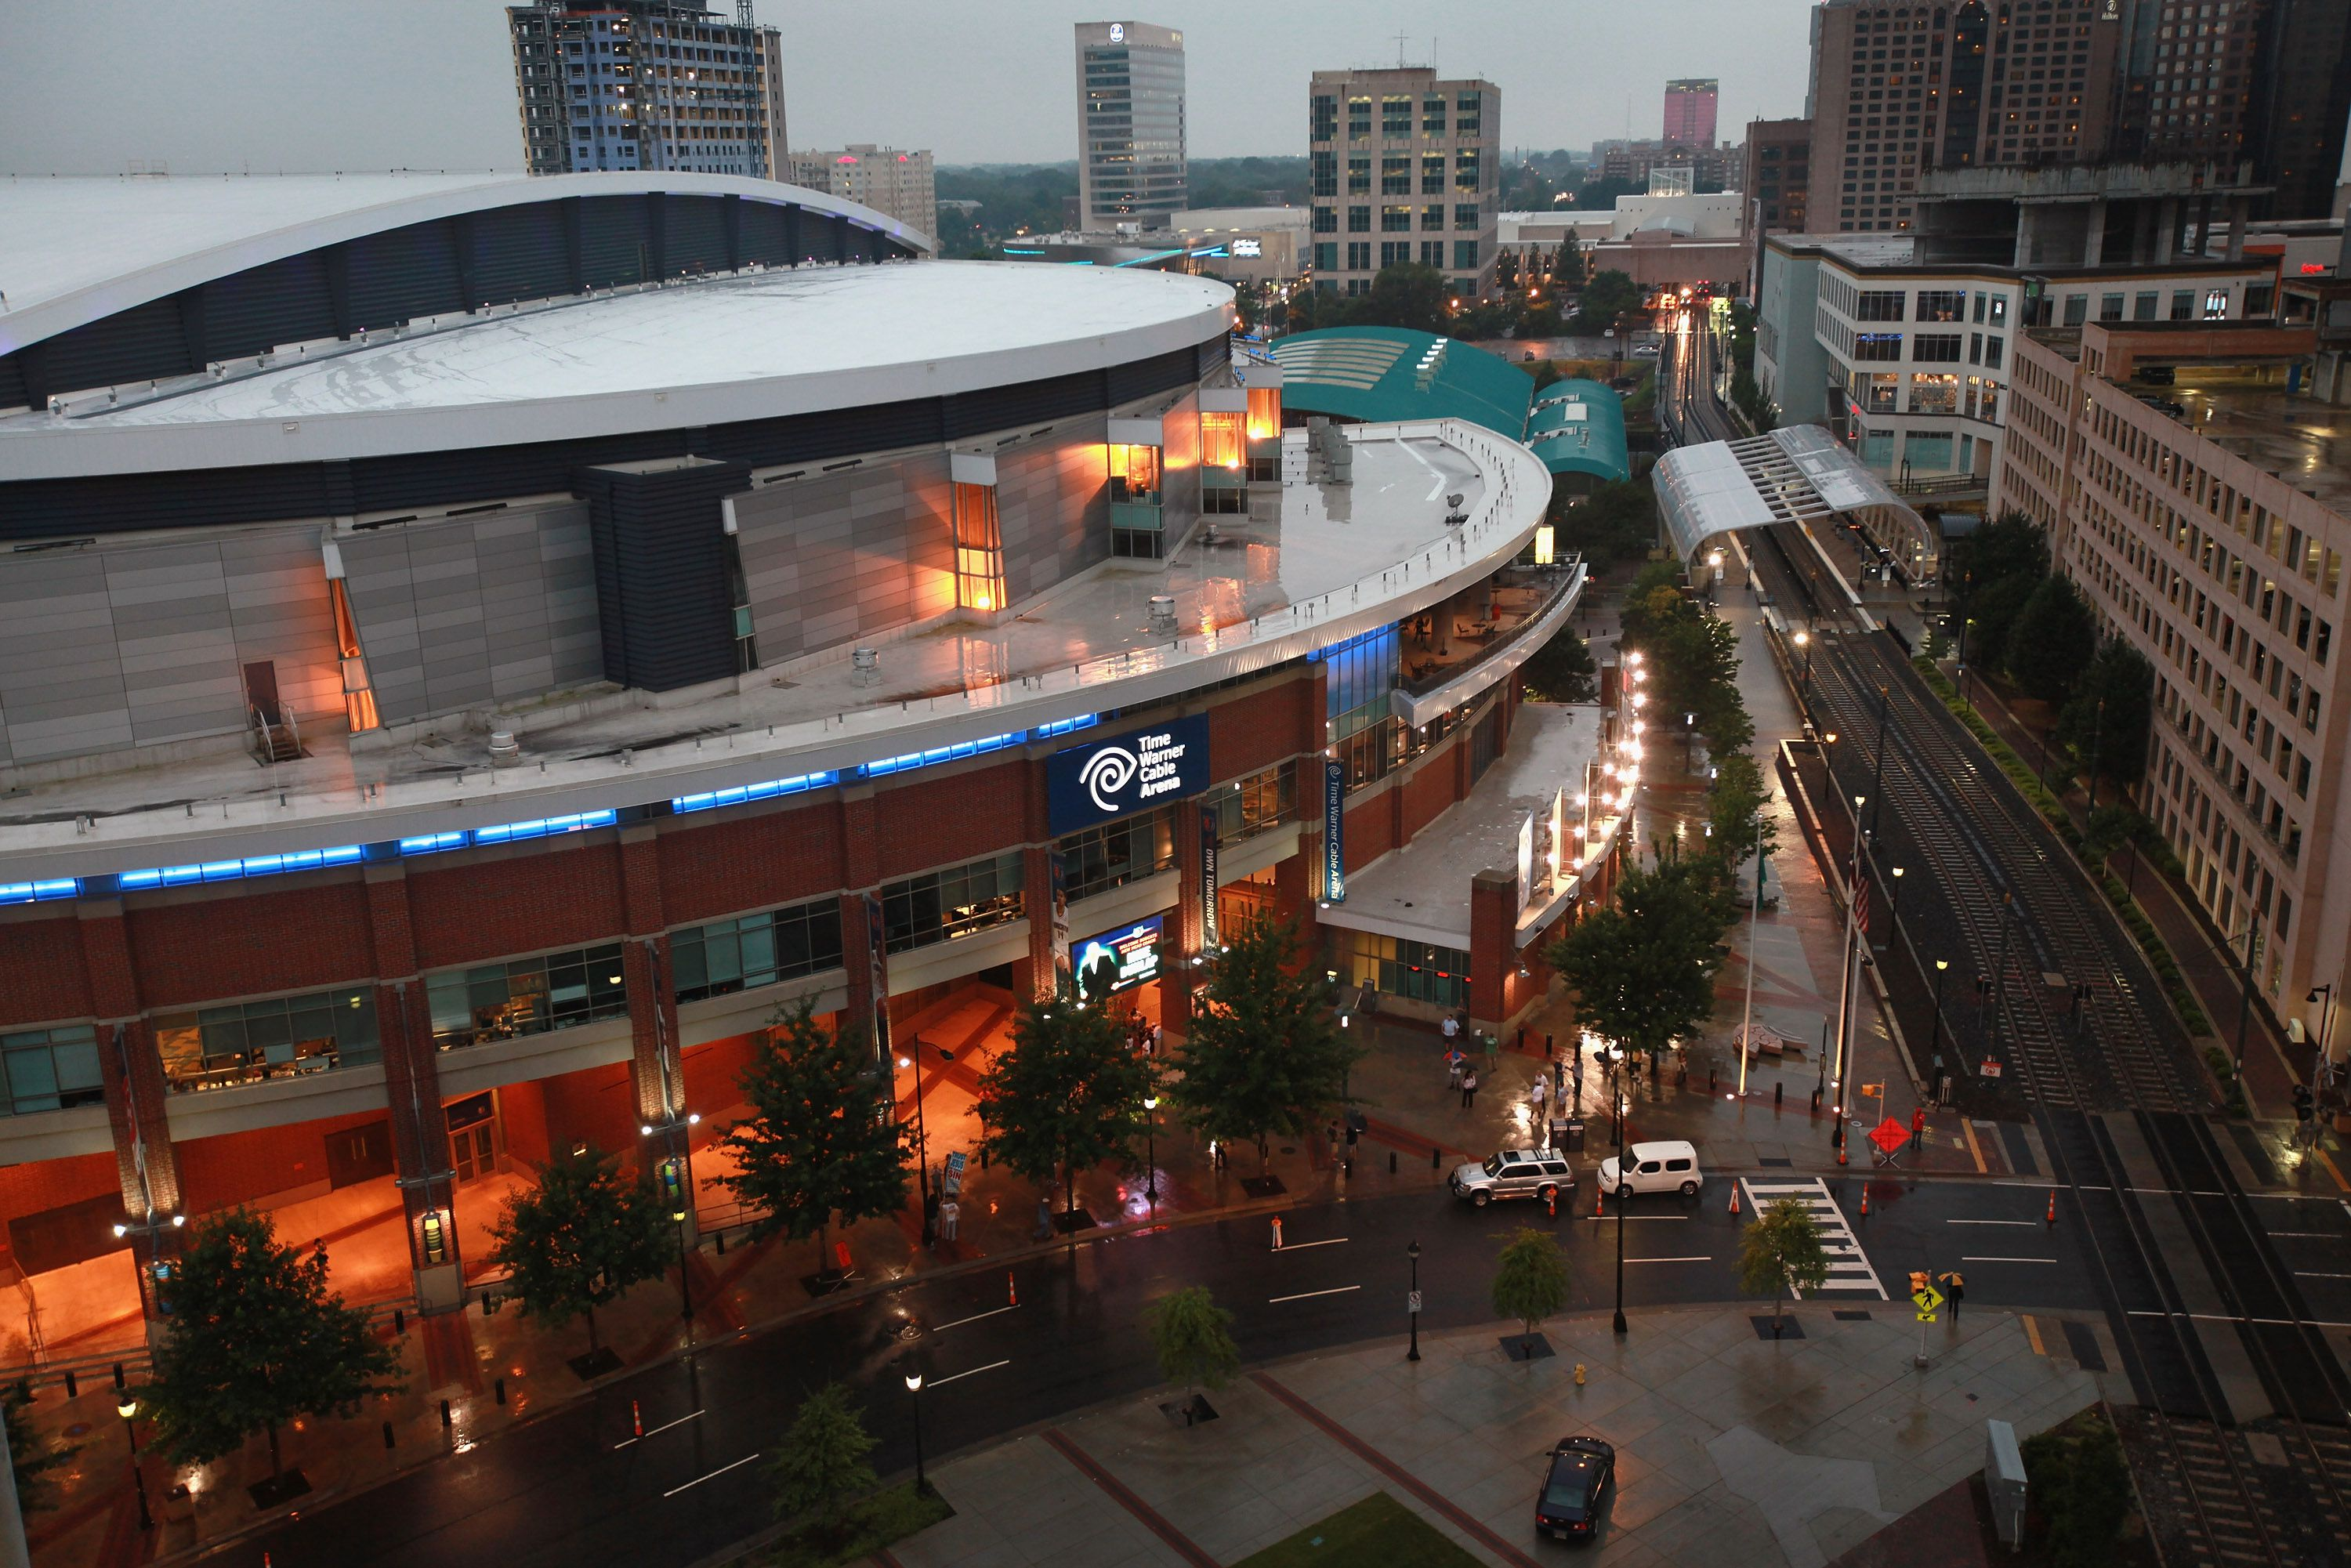 The Time Warner Cable Arena, also known as the Charlotte Bobcats Arena, in North Carolina